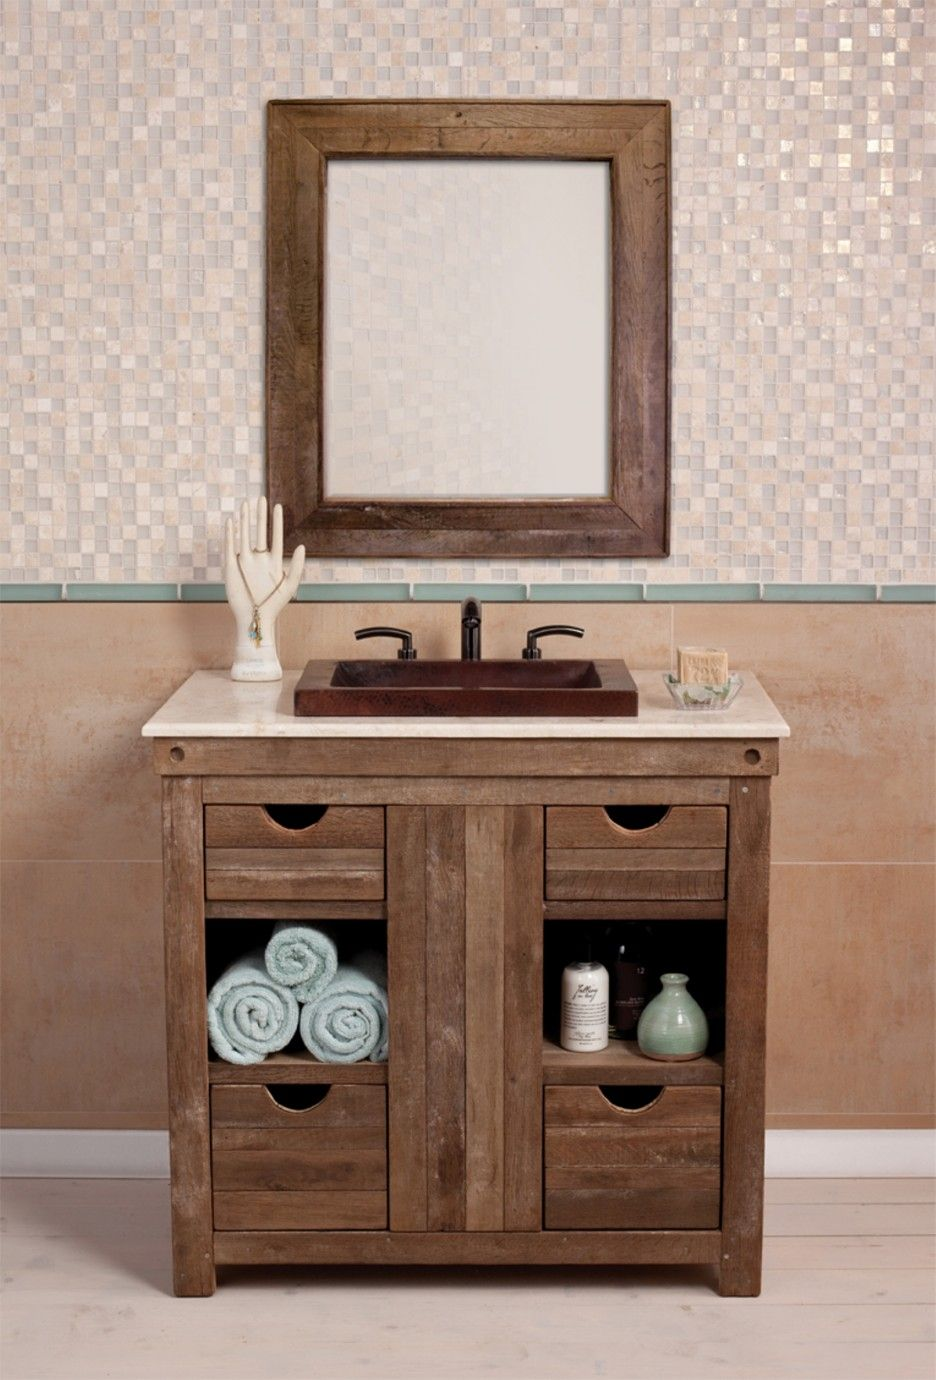 Traditional rustic sink for bathroom idea featuring wall mounted oak wood brown beige square countertop top marble bathroom vanity undermount sink and